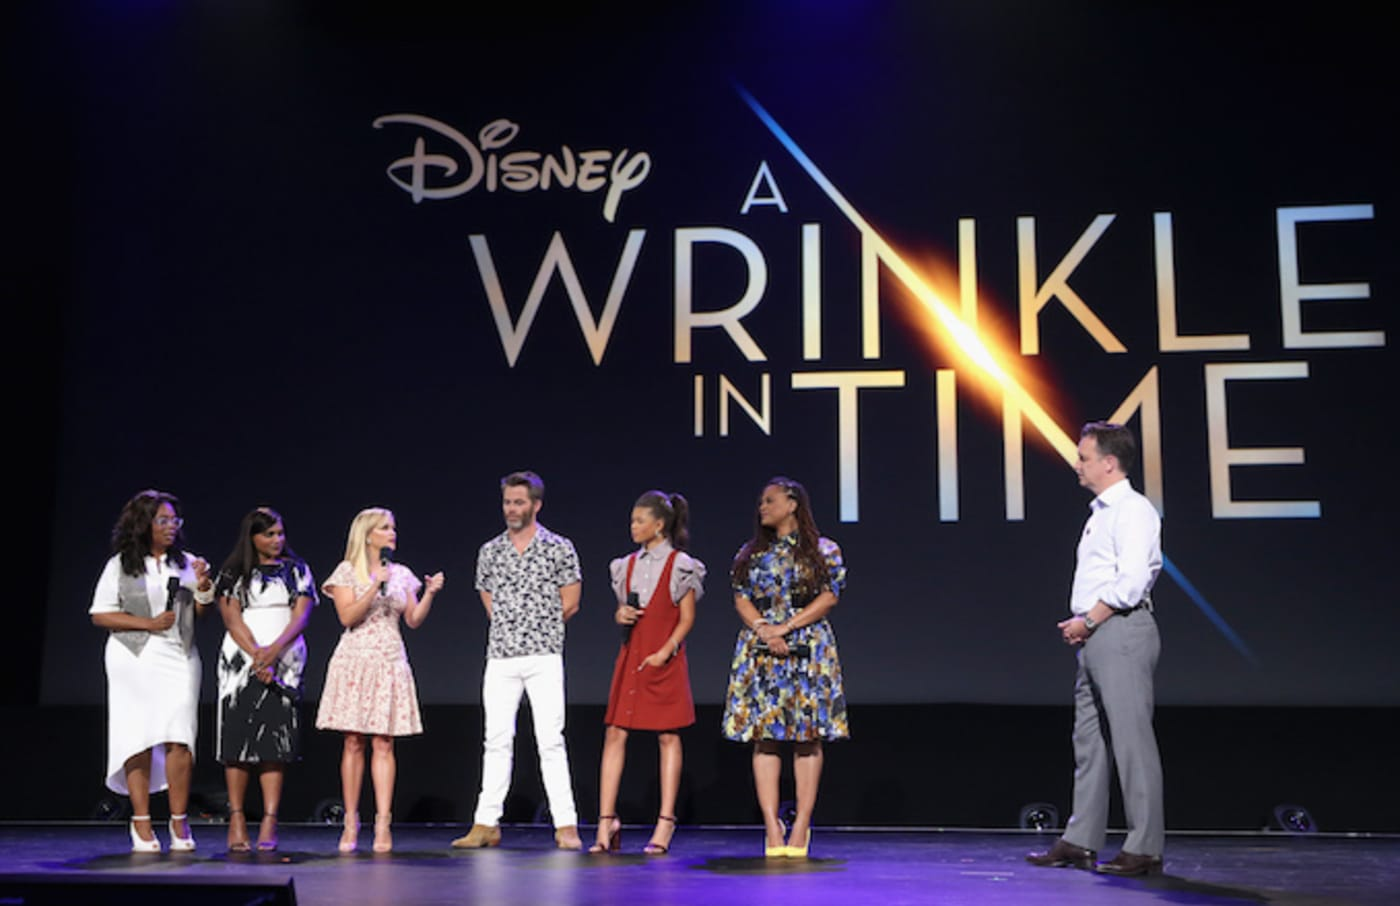 A Wrinkle in Time cast.